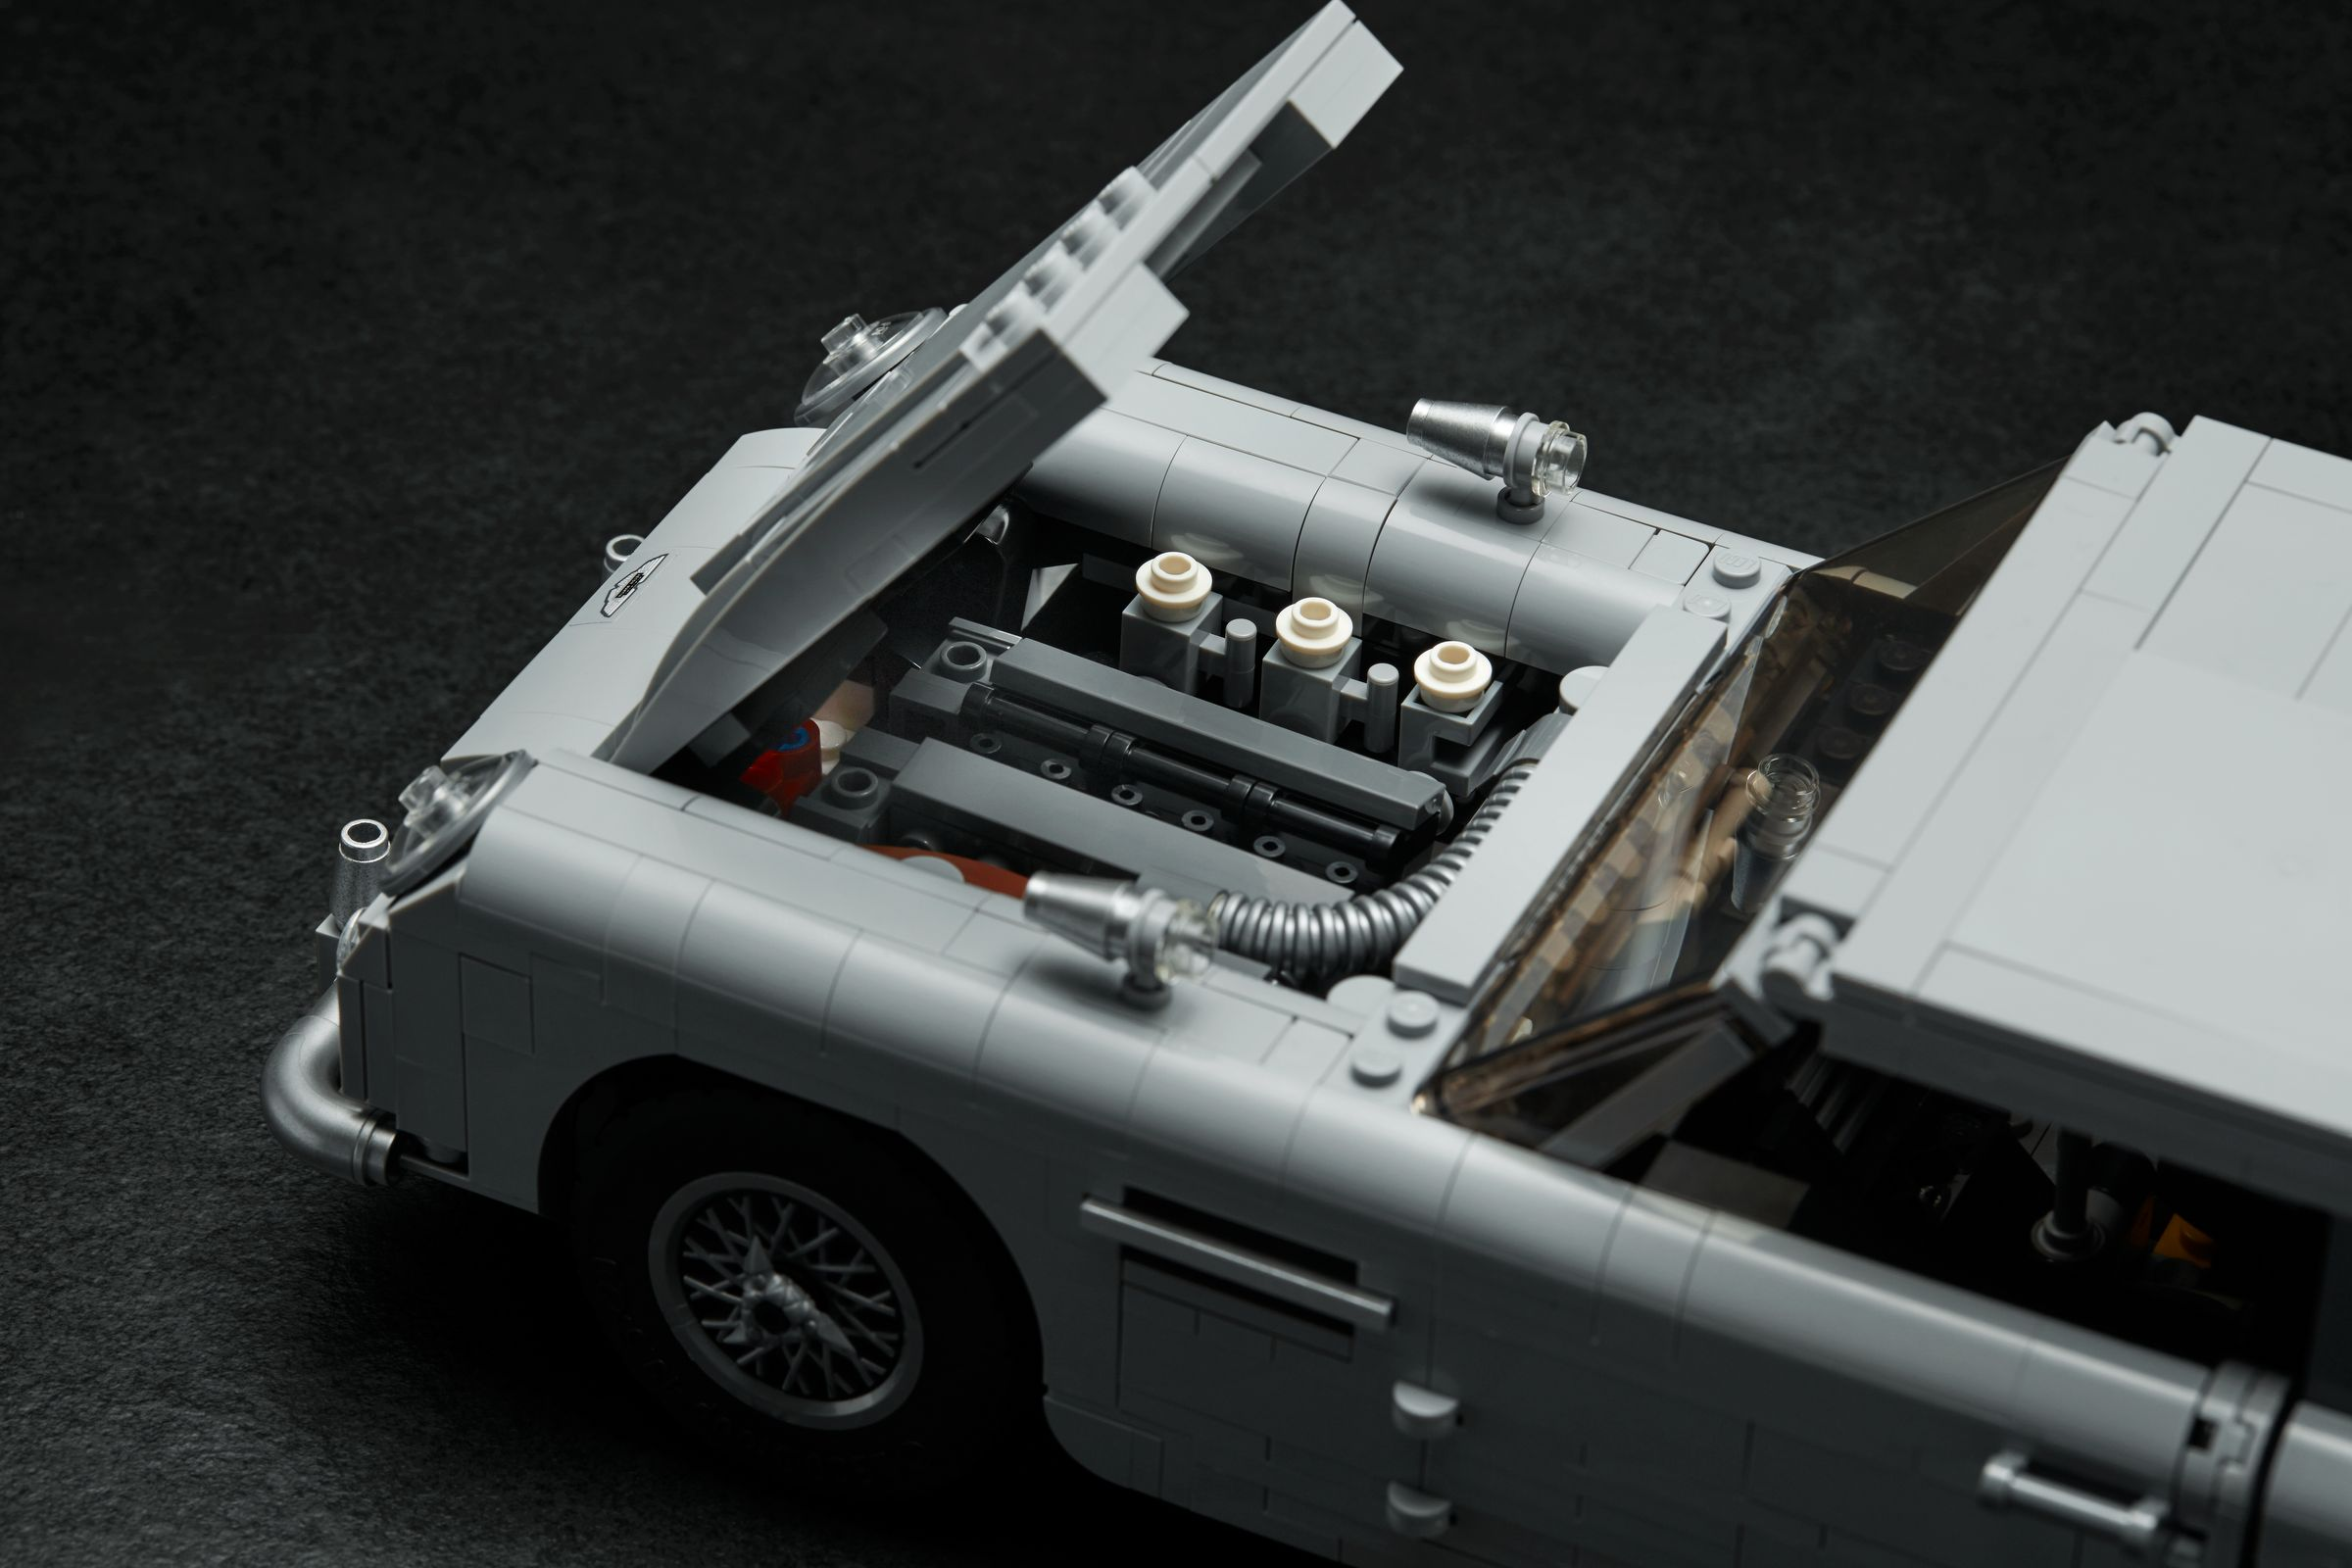 LEGO Advanced Models 10262 James Bond Aston Martin DB5 LEGO_10262_alt6.jpg